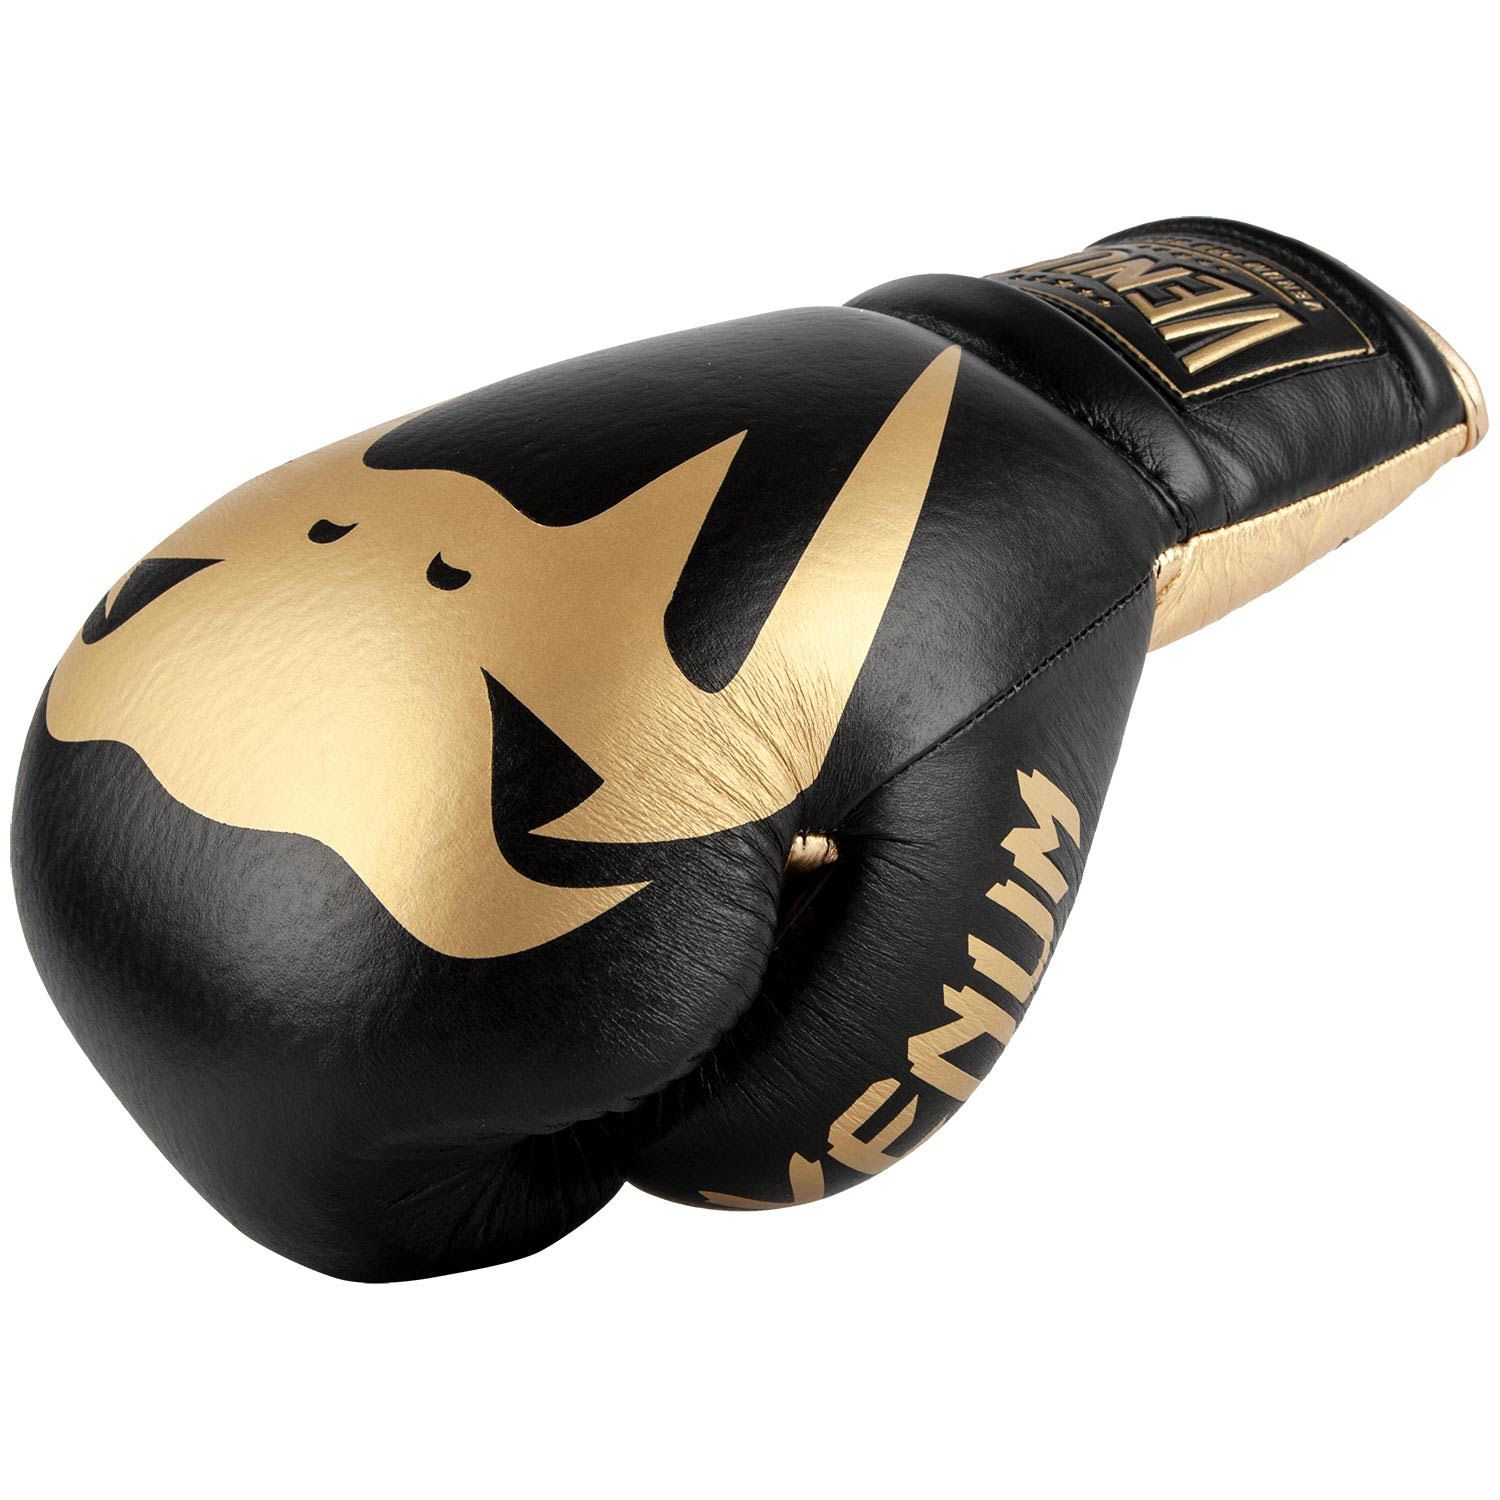 Venum Giant 2.0 Pro Boxing Gloves - With Laces - Black/Gold - Black/Gold